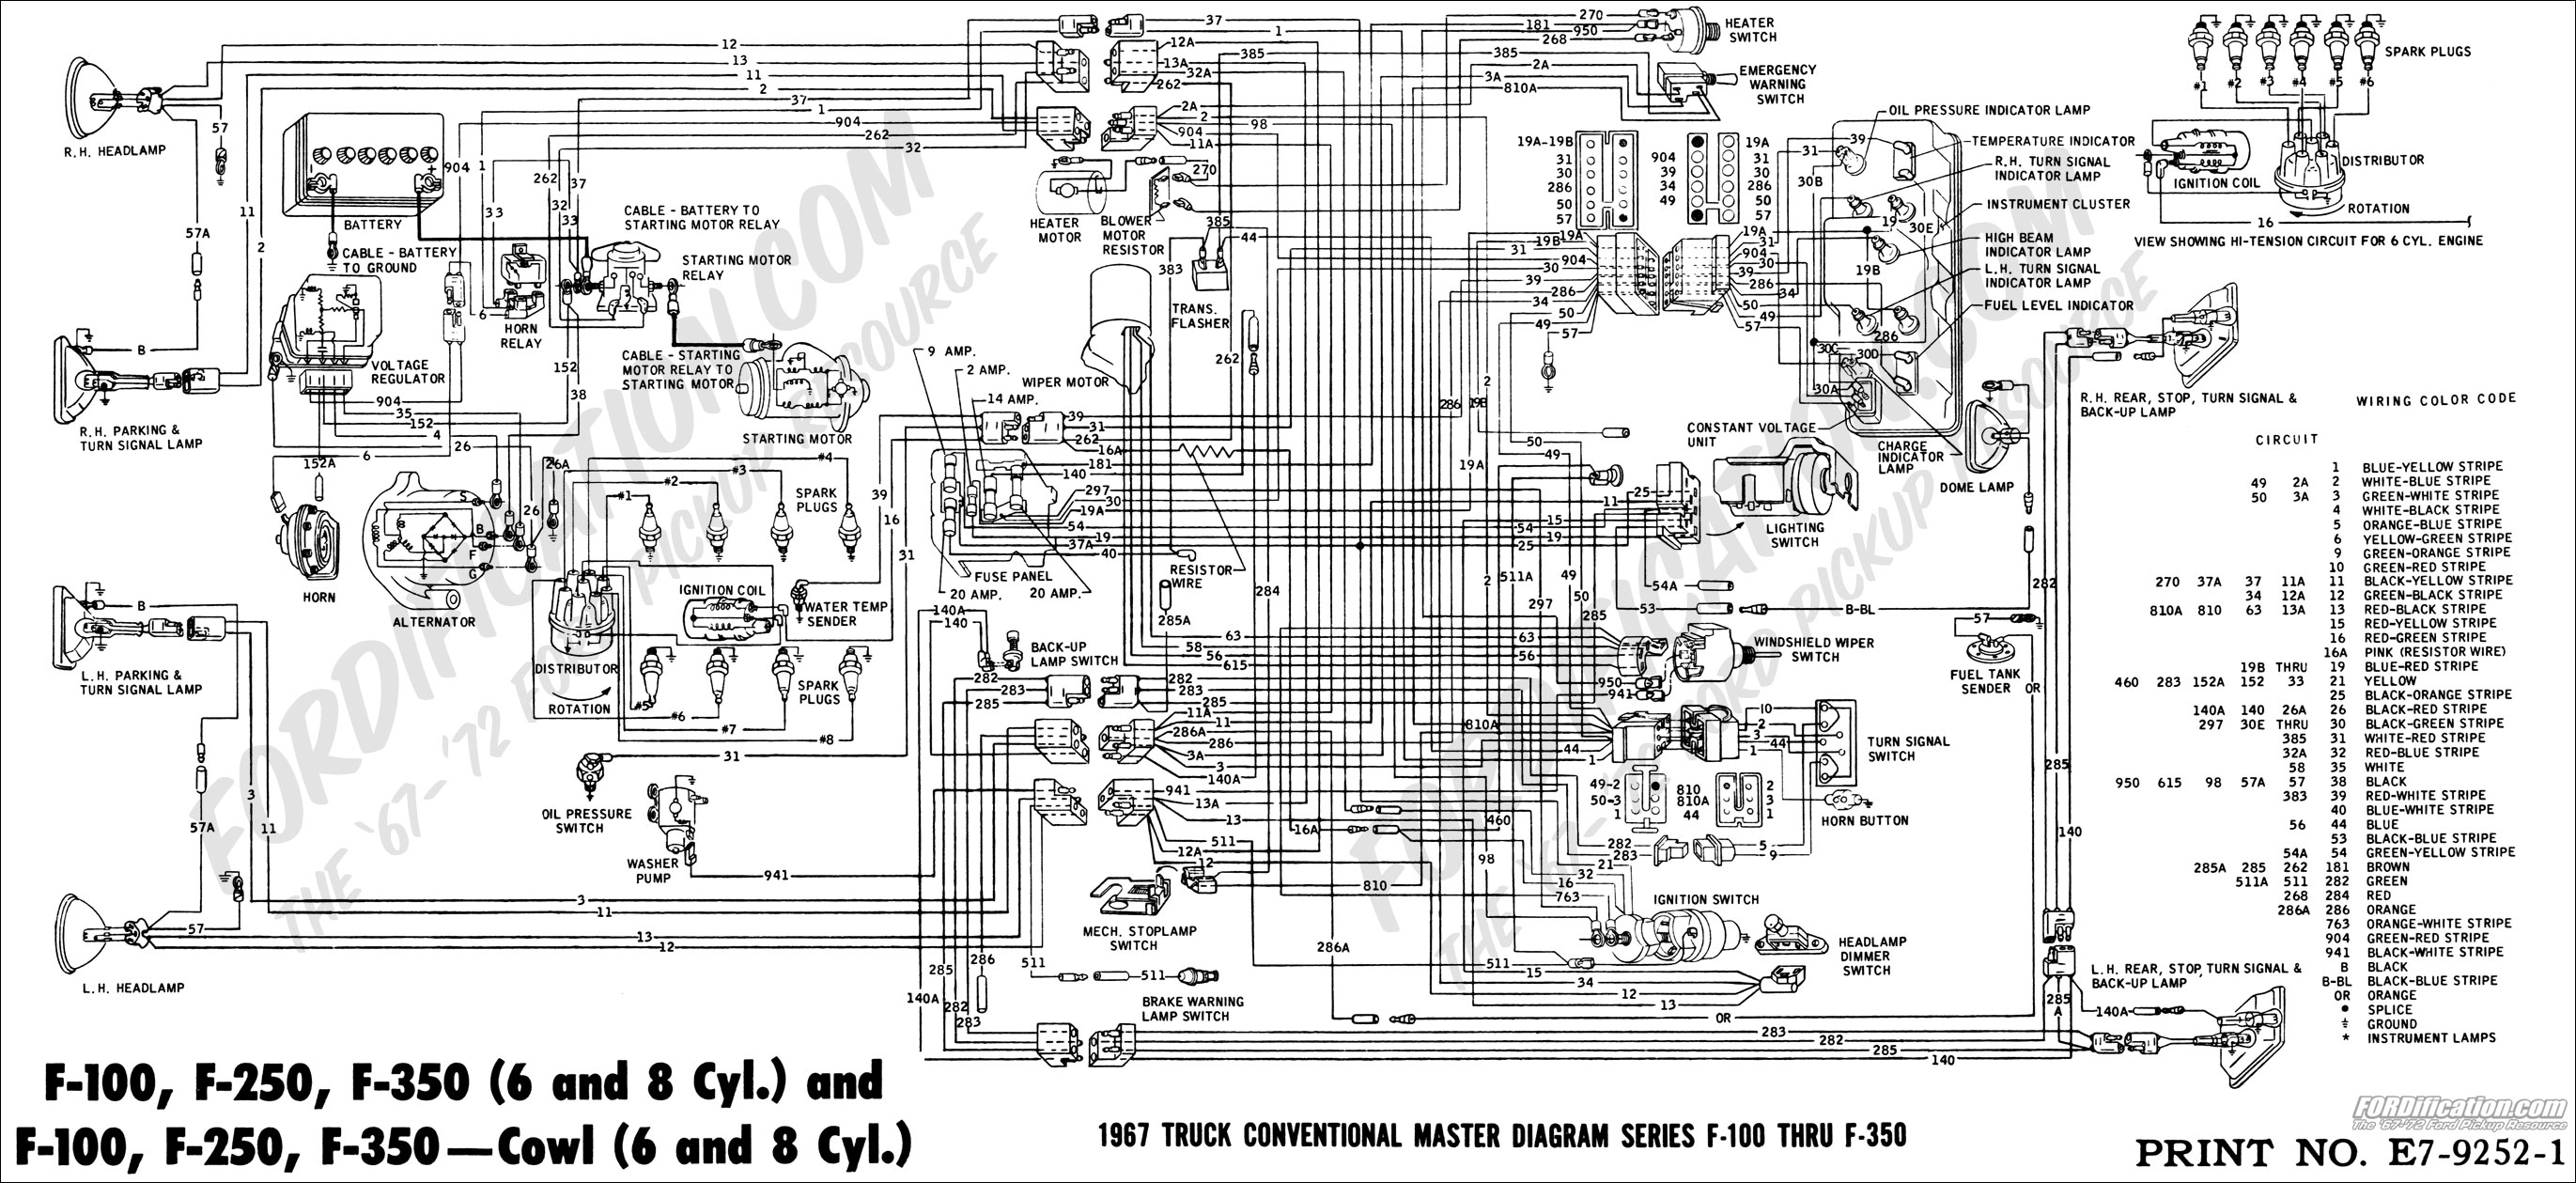 1999 ford f250 headlight wiring diagram johnson outboard ignition truck technical drawings and schematics section h